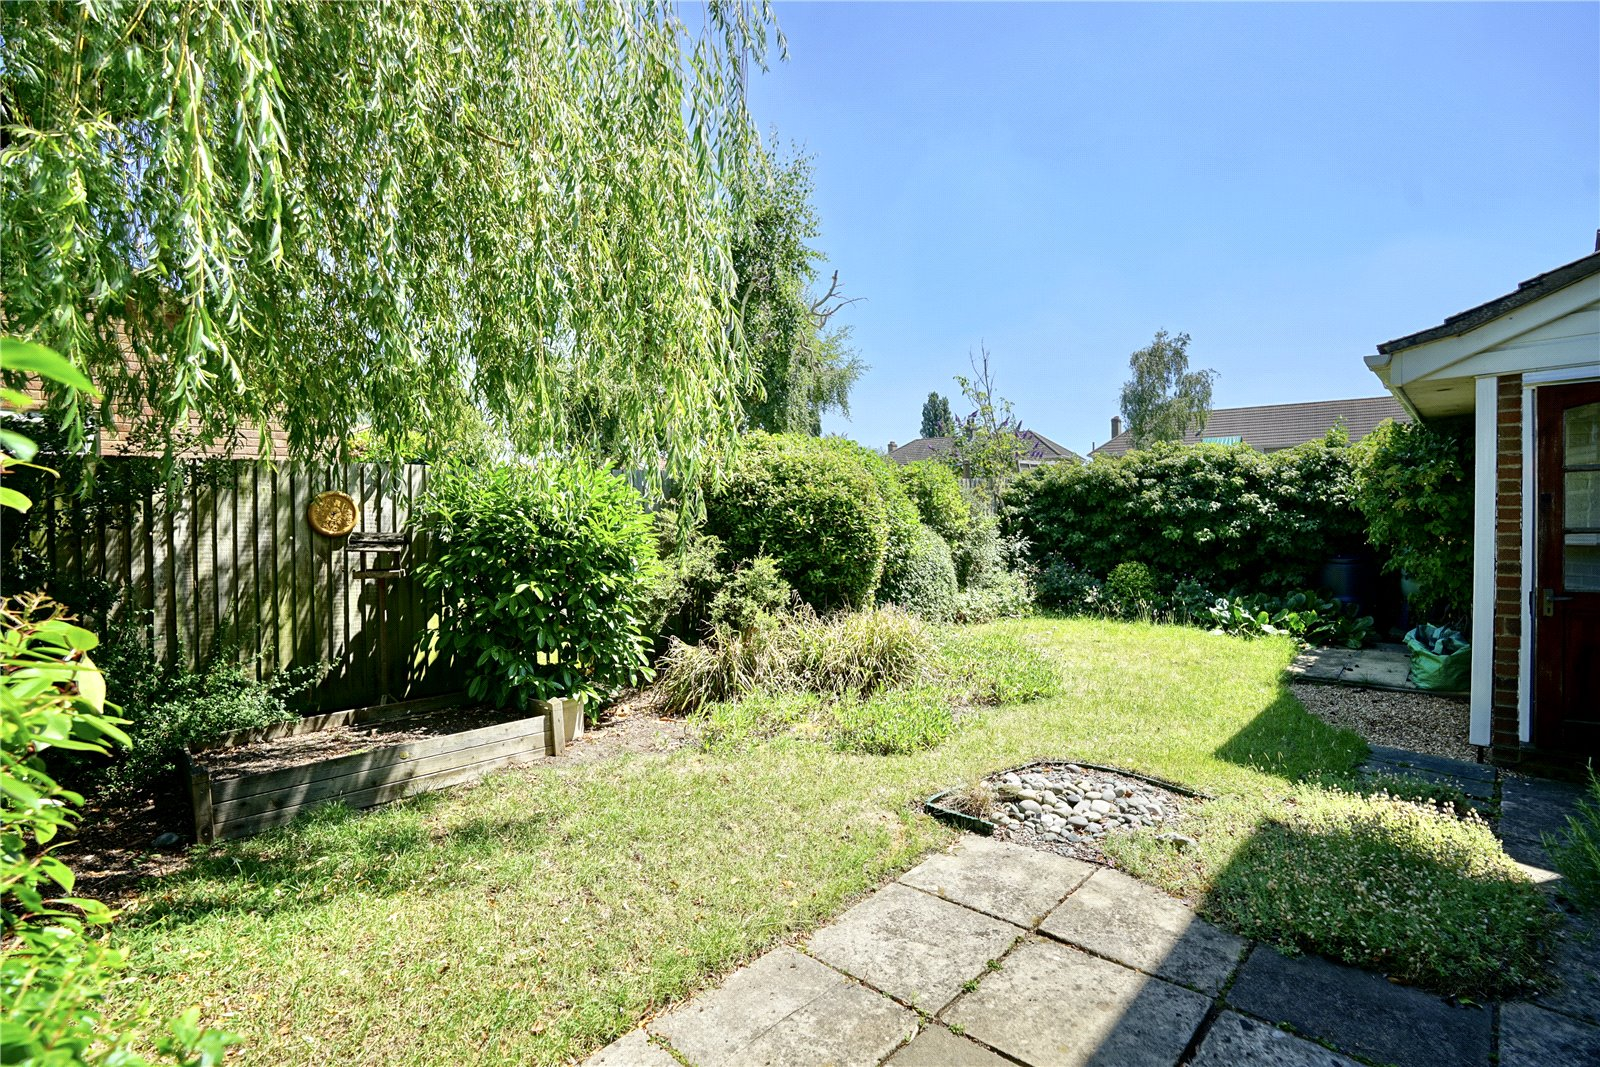 4 bed house for sale in All Hallows, Sandy  - Property Image 13